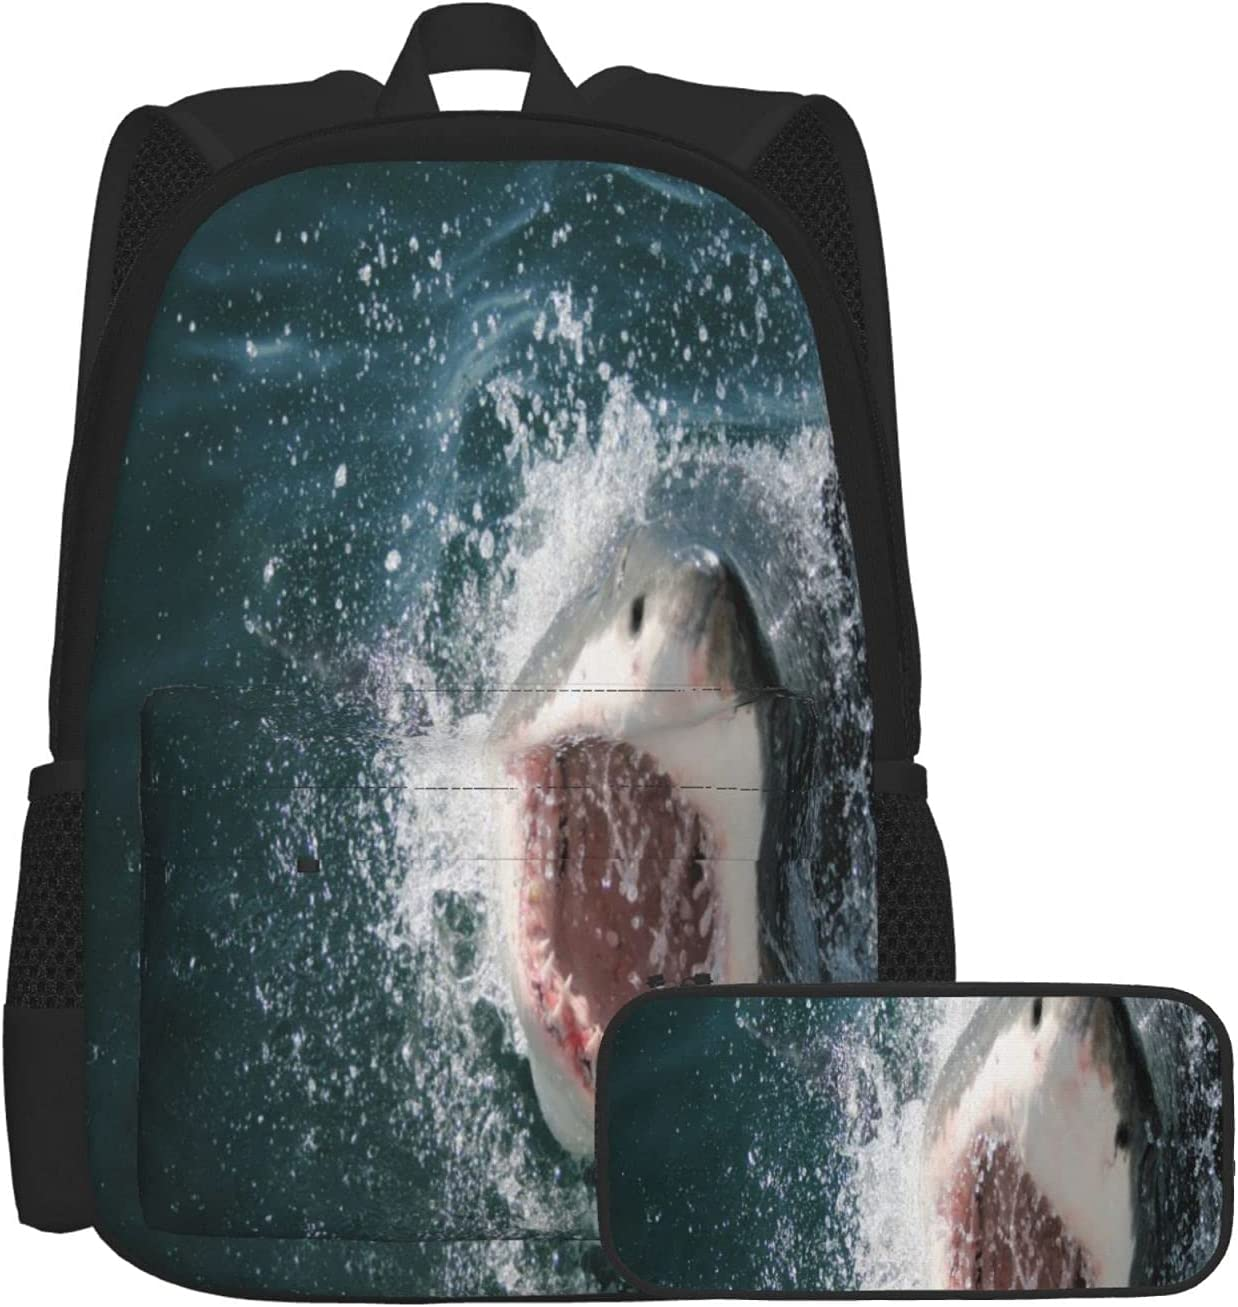 Sales for sale School Backpack Wild Animal In Sea Showing New item The Mou Attacking